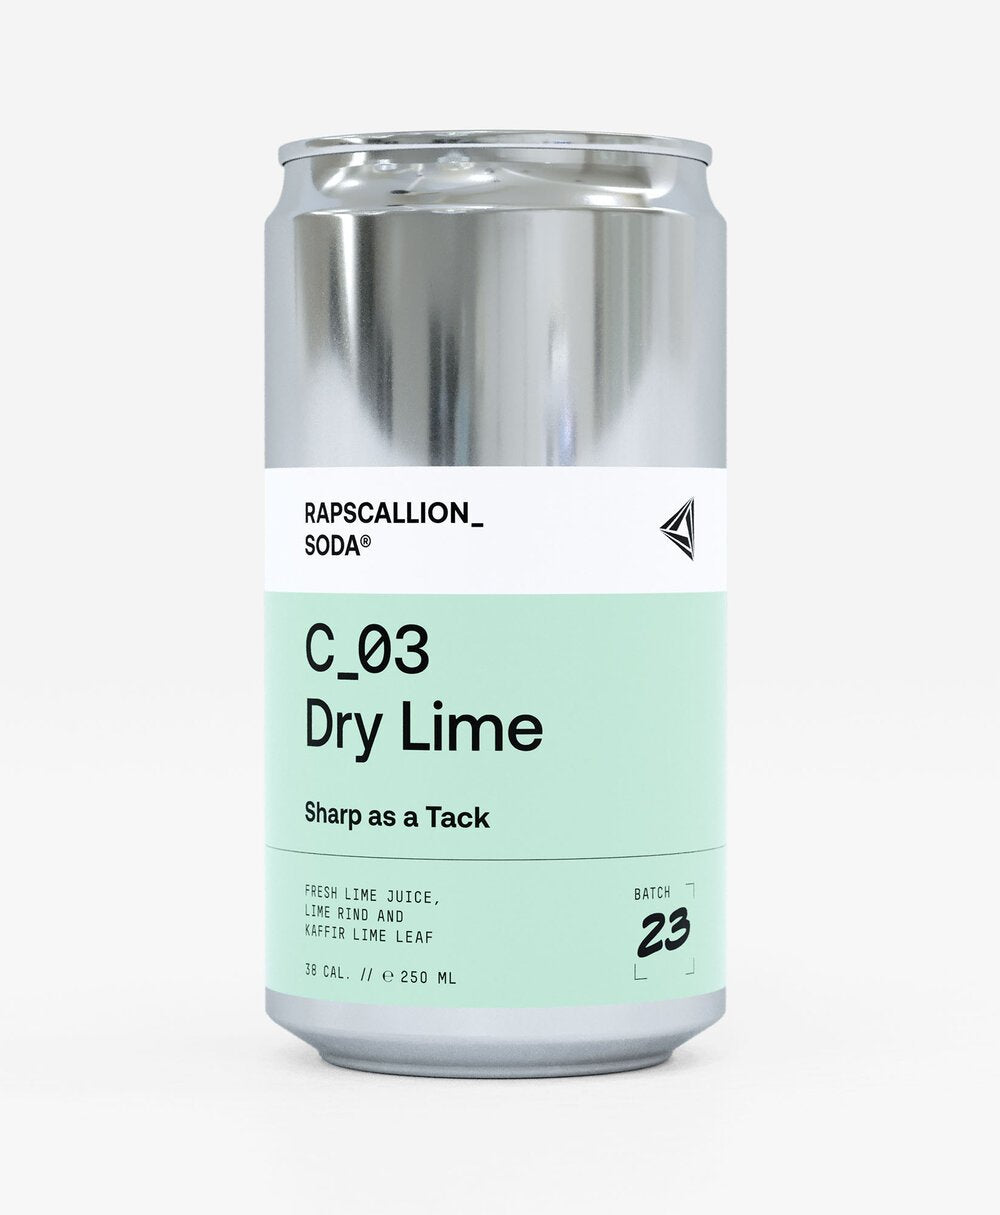 RAPSCALLION DRY LIME 250ML